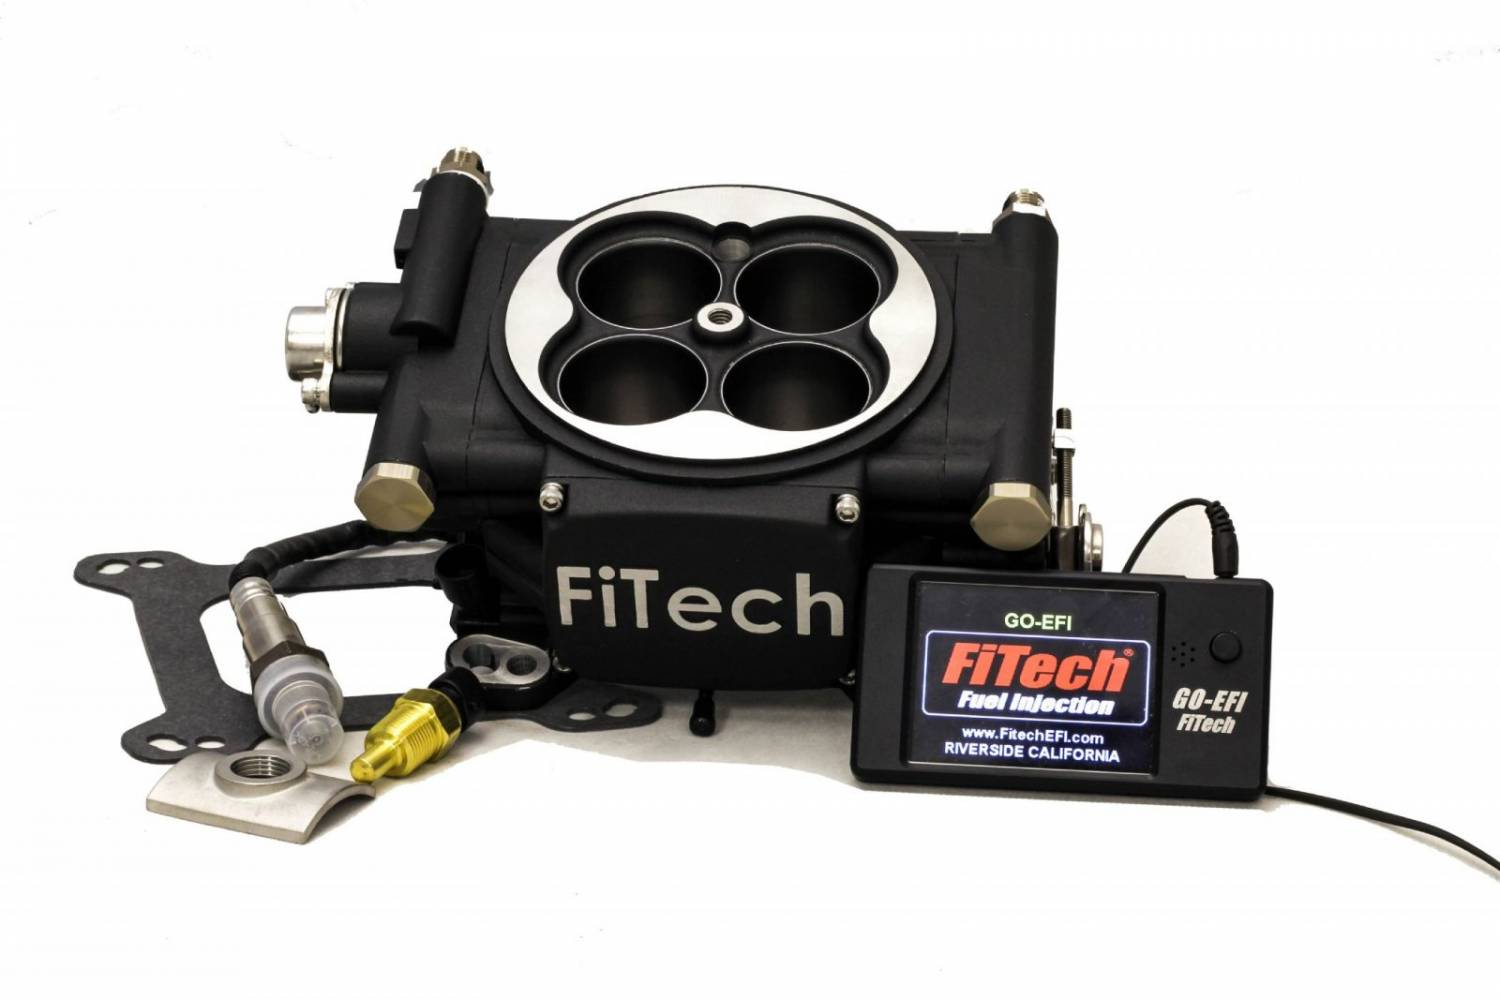 FTH-31002 - 600HP Carb Swap EFI Master Package with In-Line